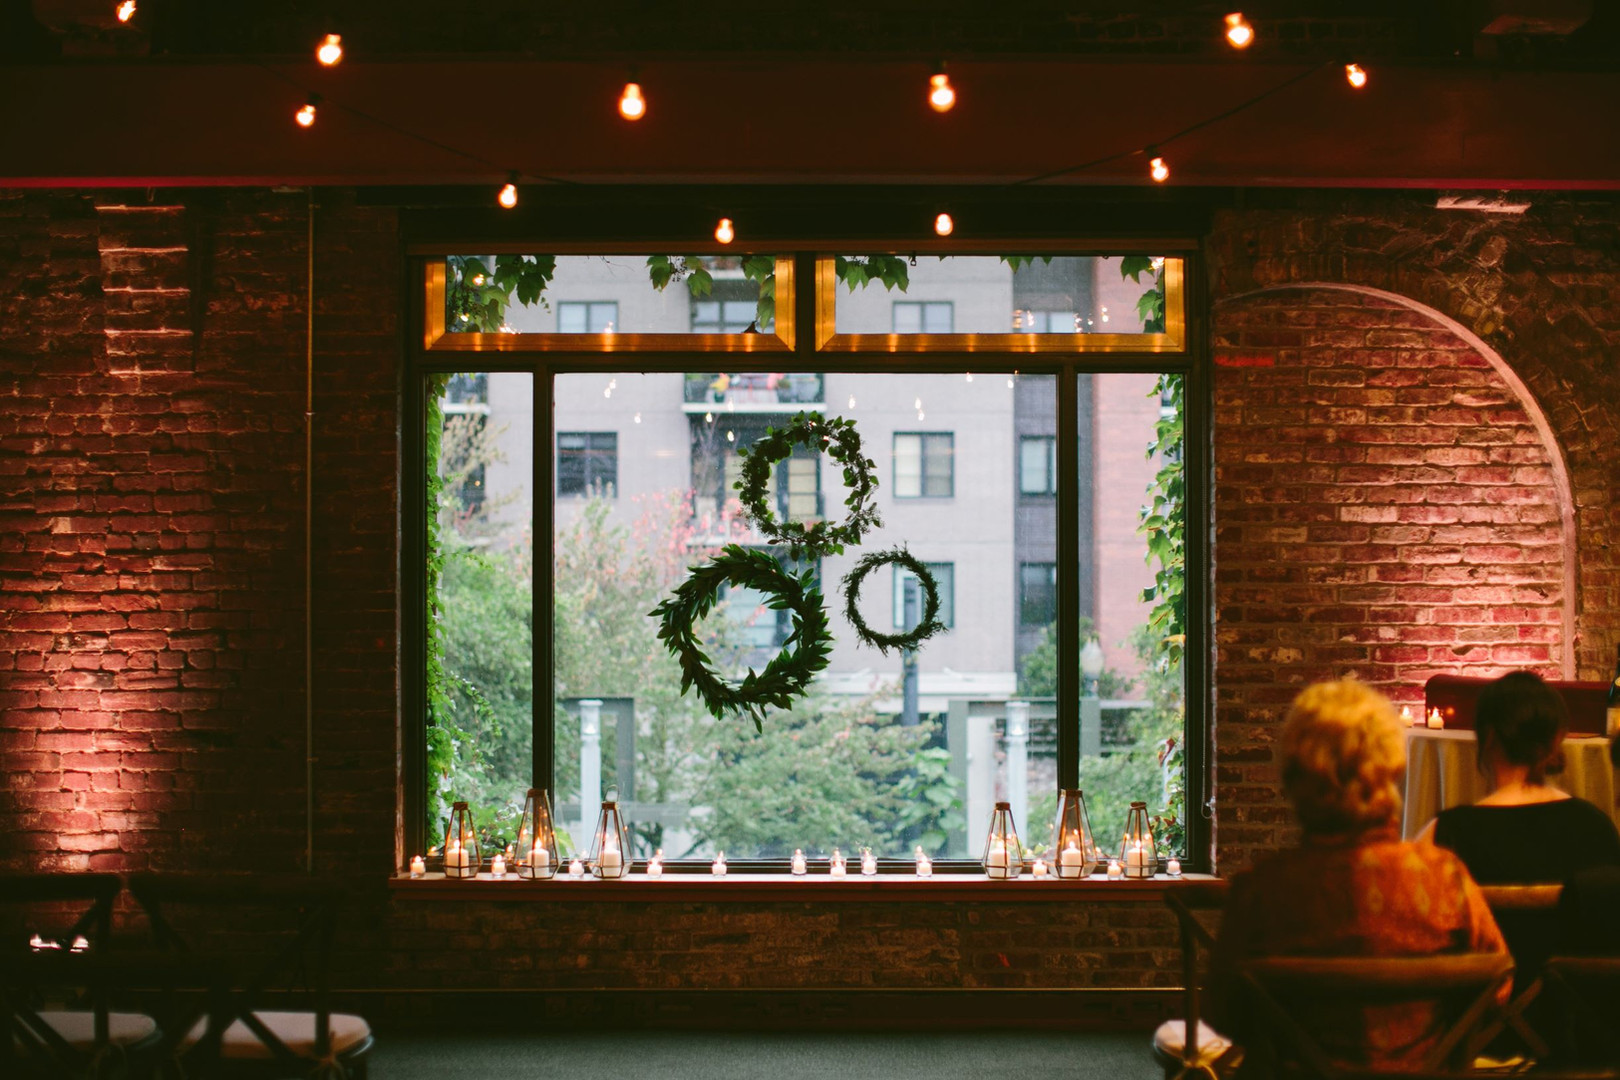 Ceremony Backdrop in the Window